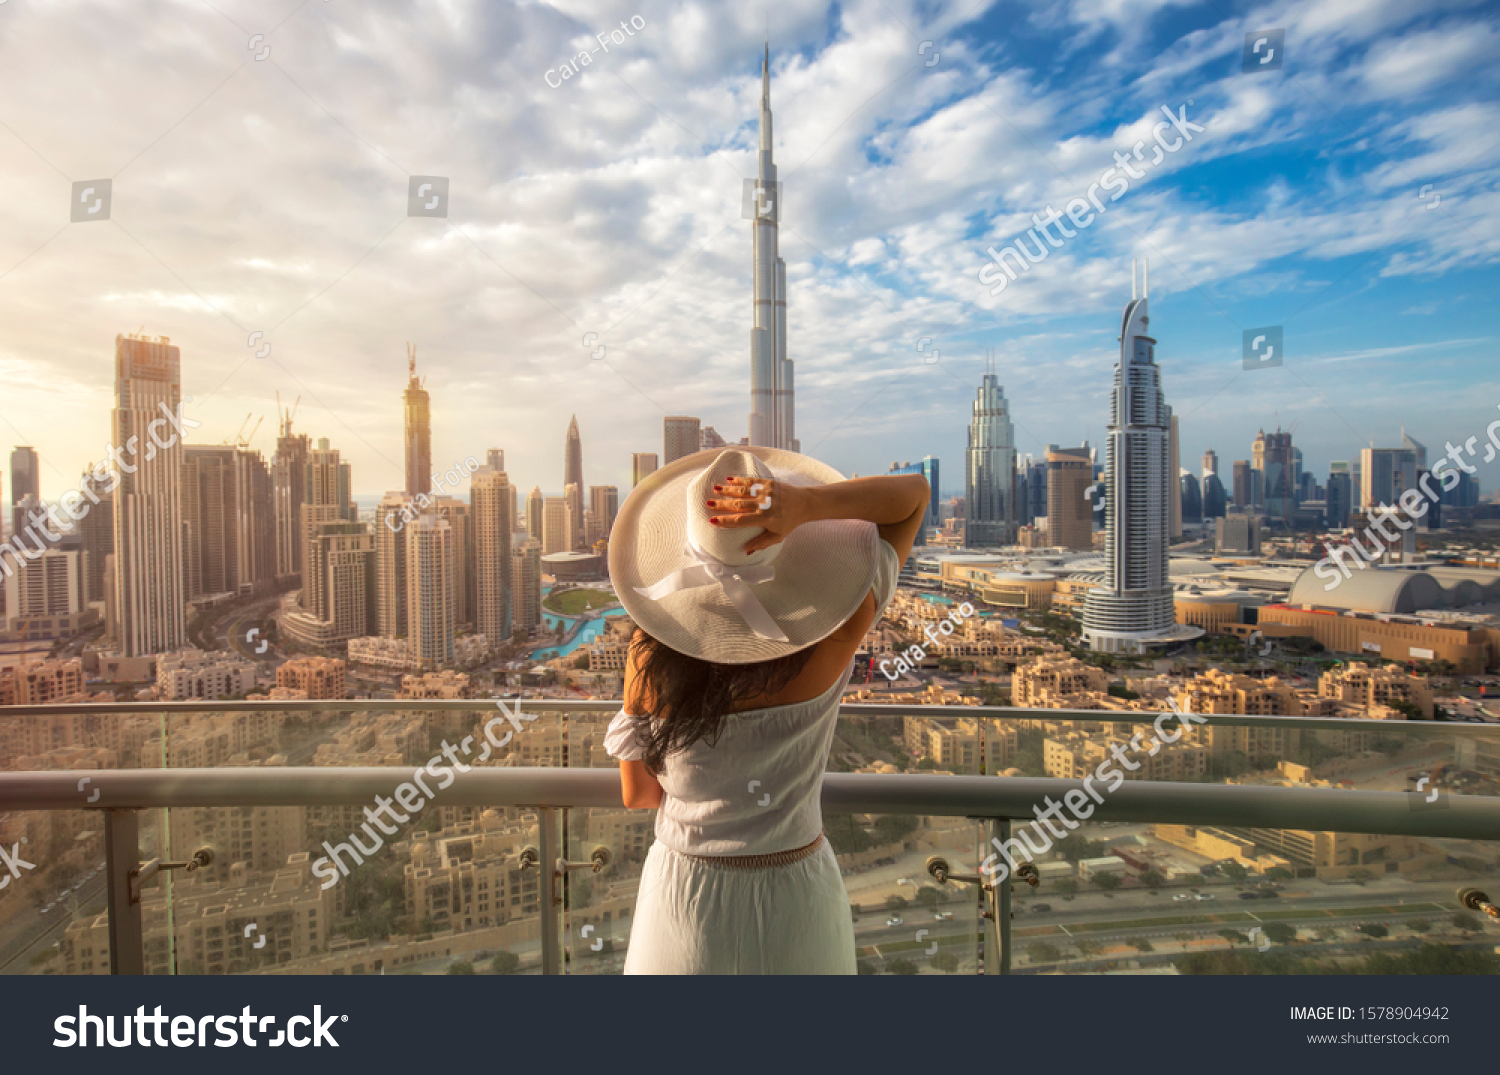 Woman with a white hat is standing on a balcony in front of the skyline from Dubai Downtown #1578904942